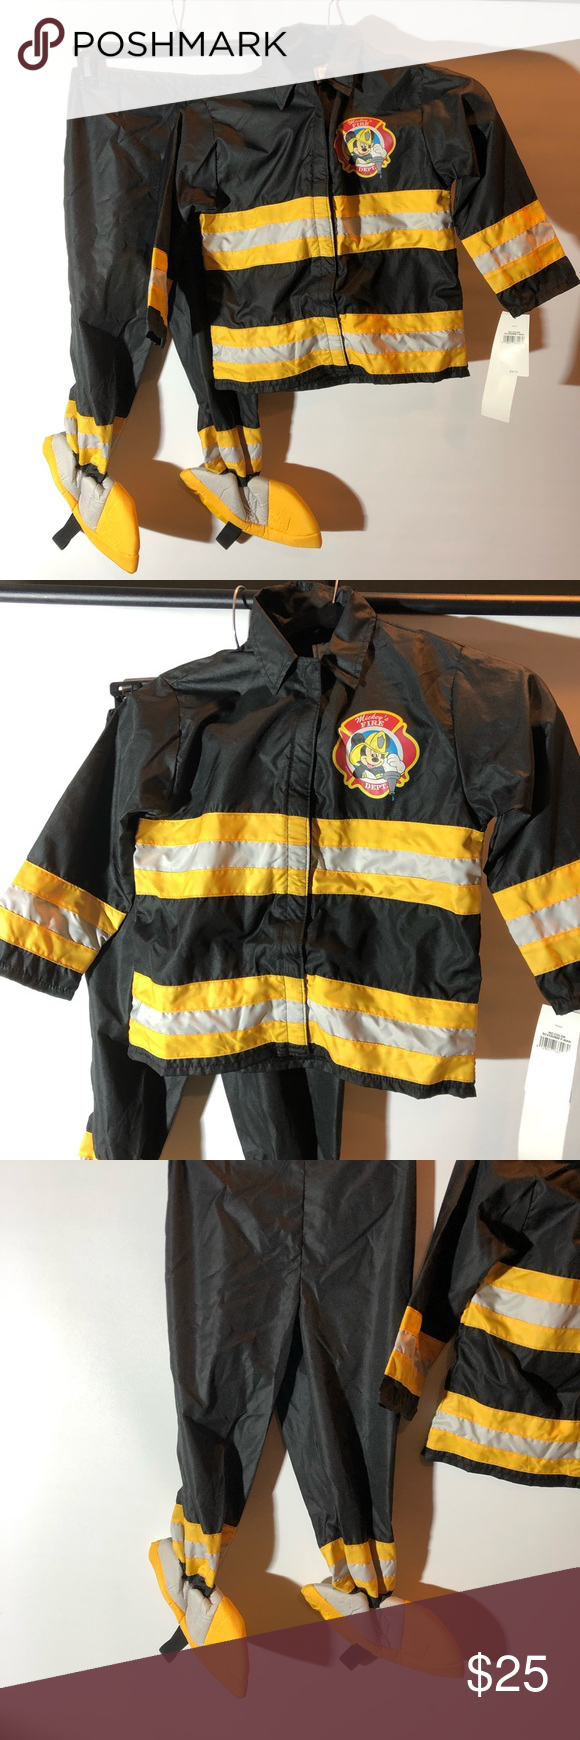 NWT Disney Store Mickey Firefighter Costume | Firefighter ...